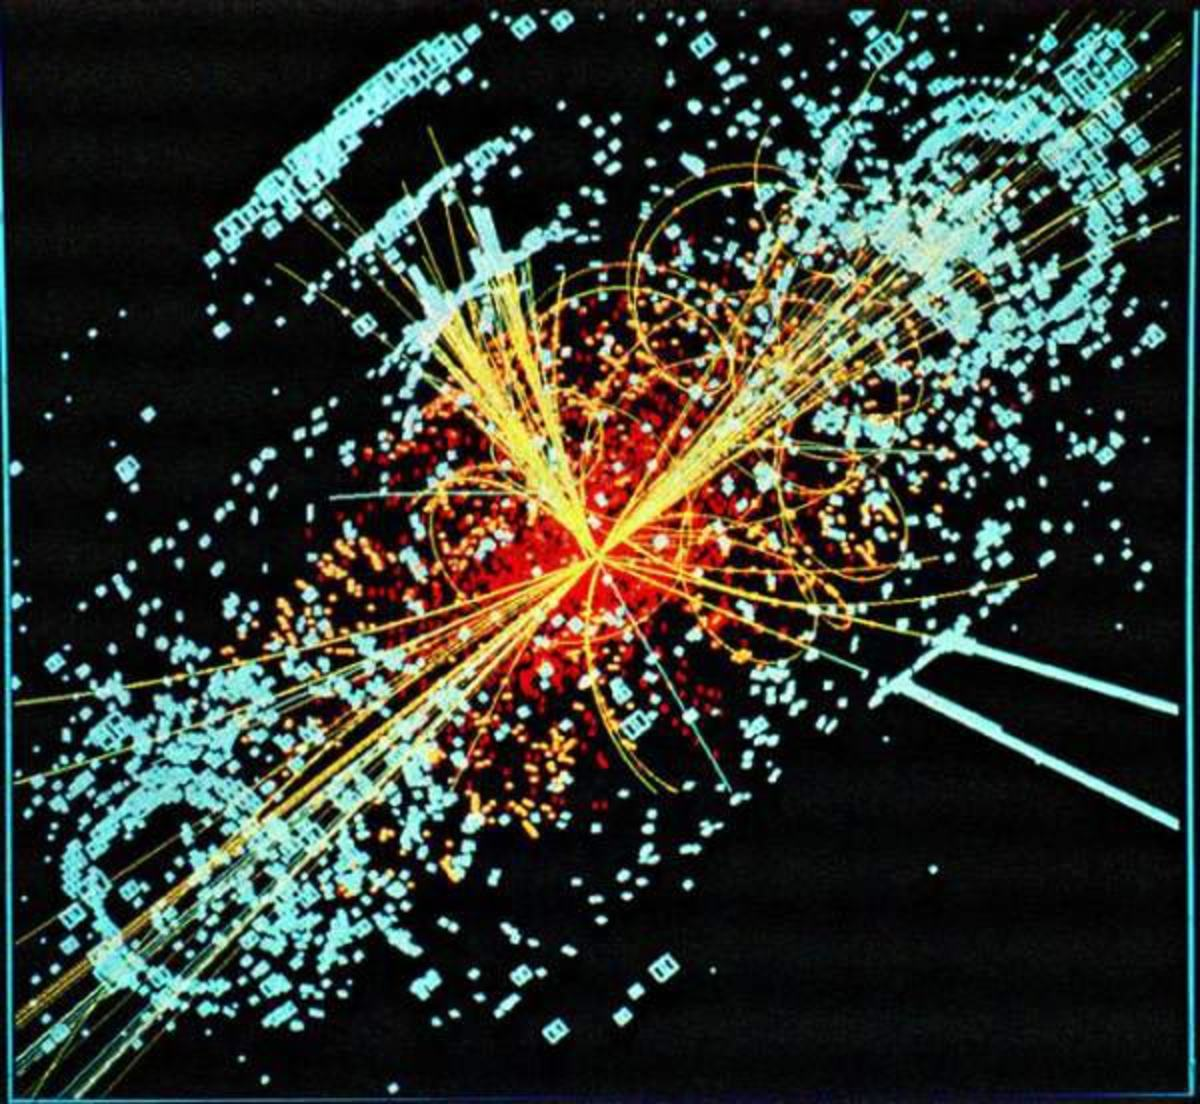 Representation of the collision of particles inside the collider.